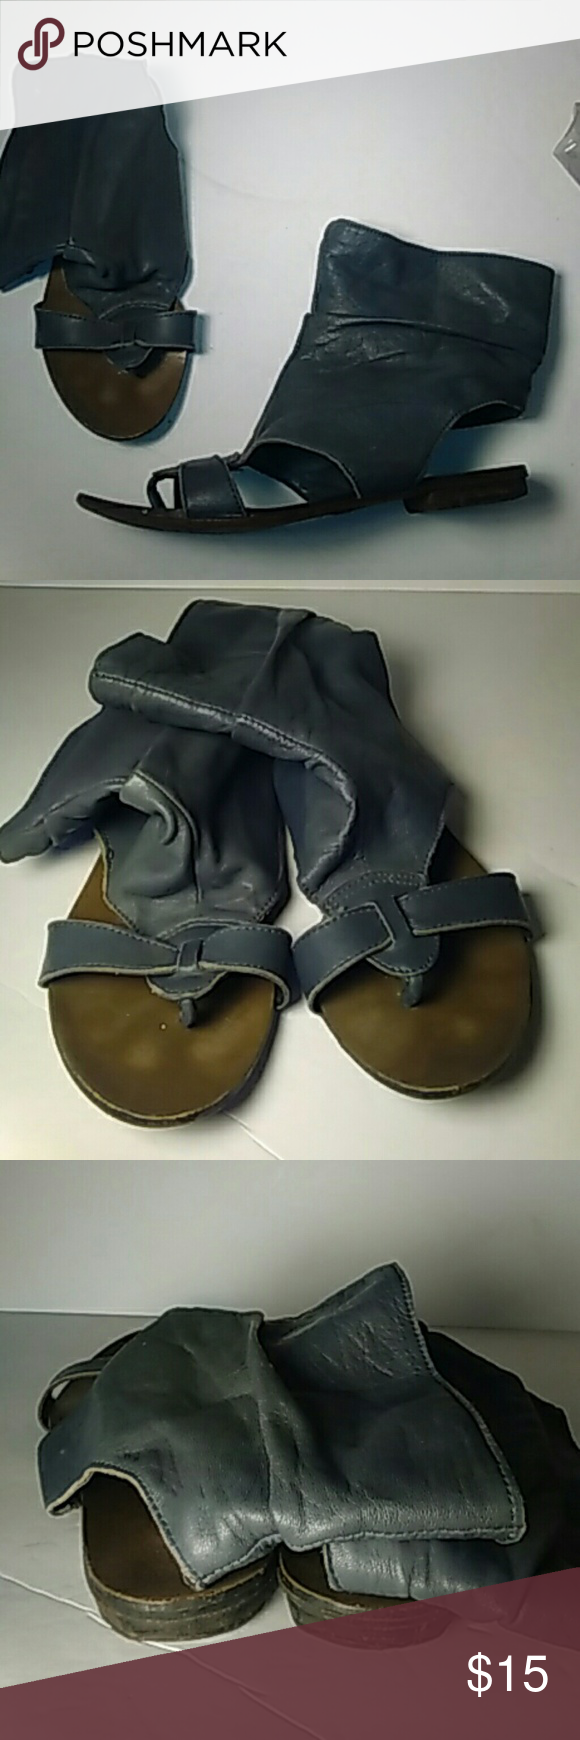 Italian leather gladiator sandals. Butter soft Italian leather, good condition but show some wear with plenty of life left! Really cute shoes!! Reqins Shoes Sandals